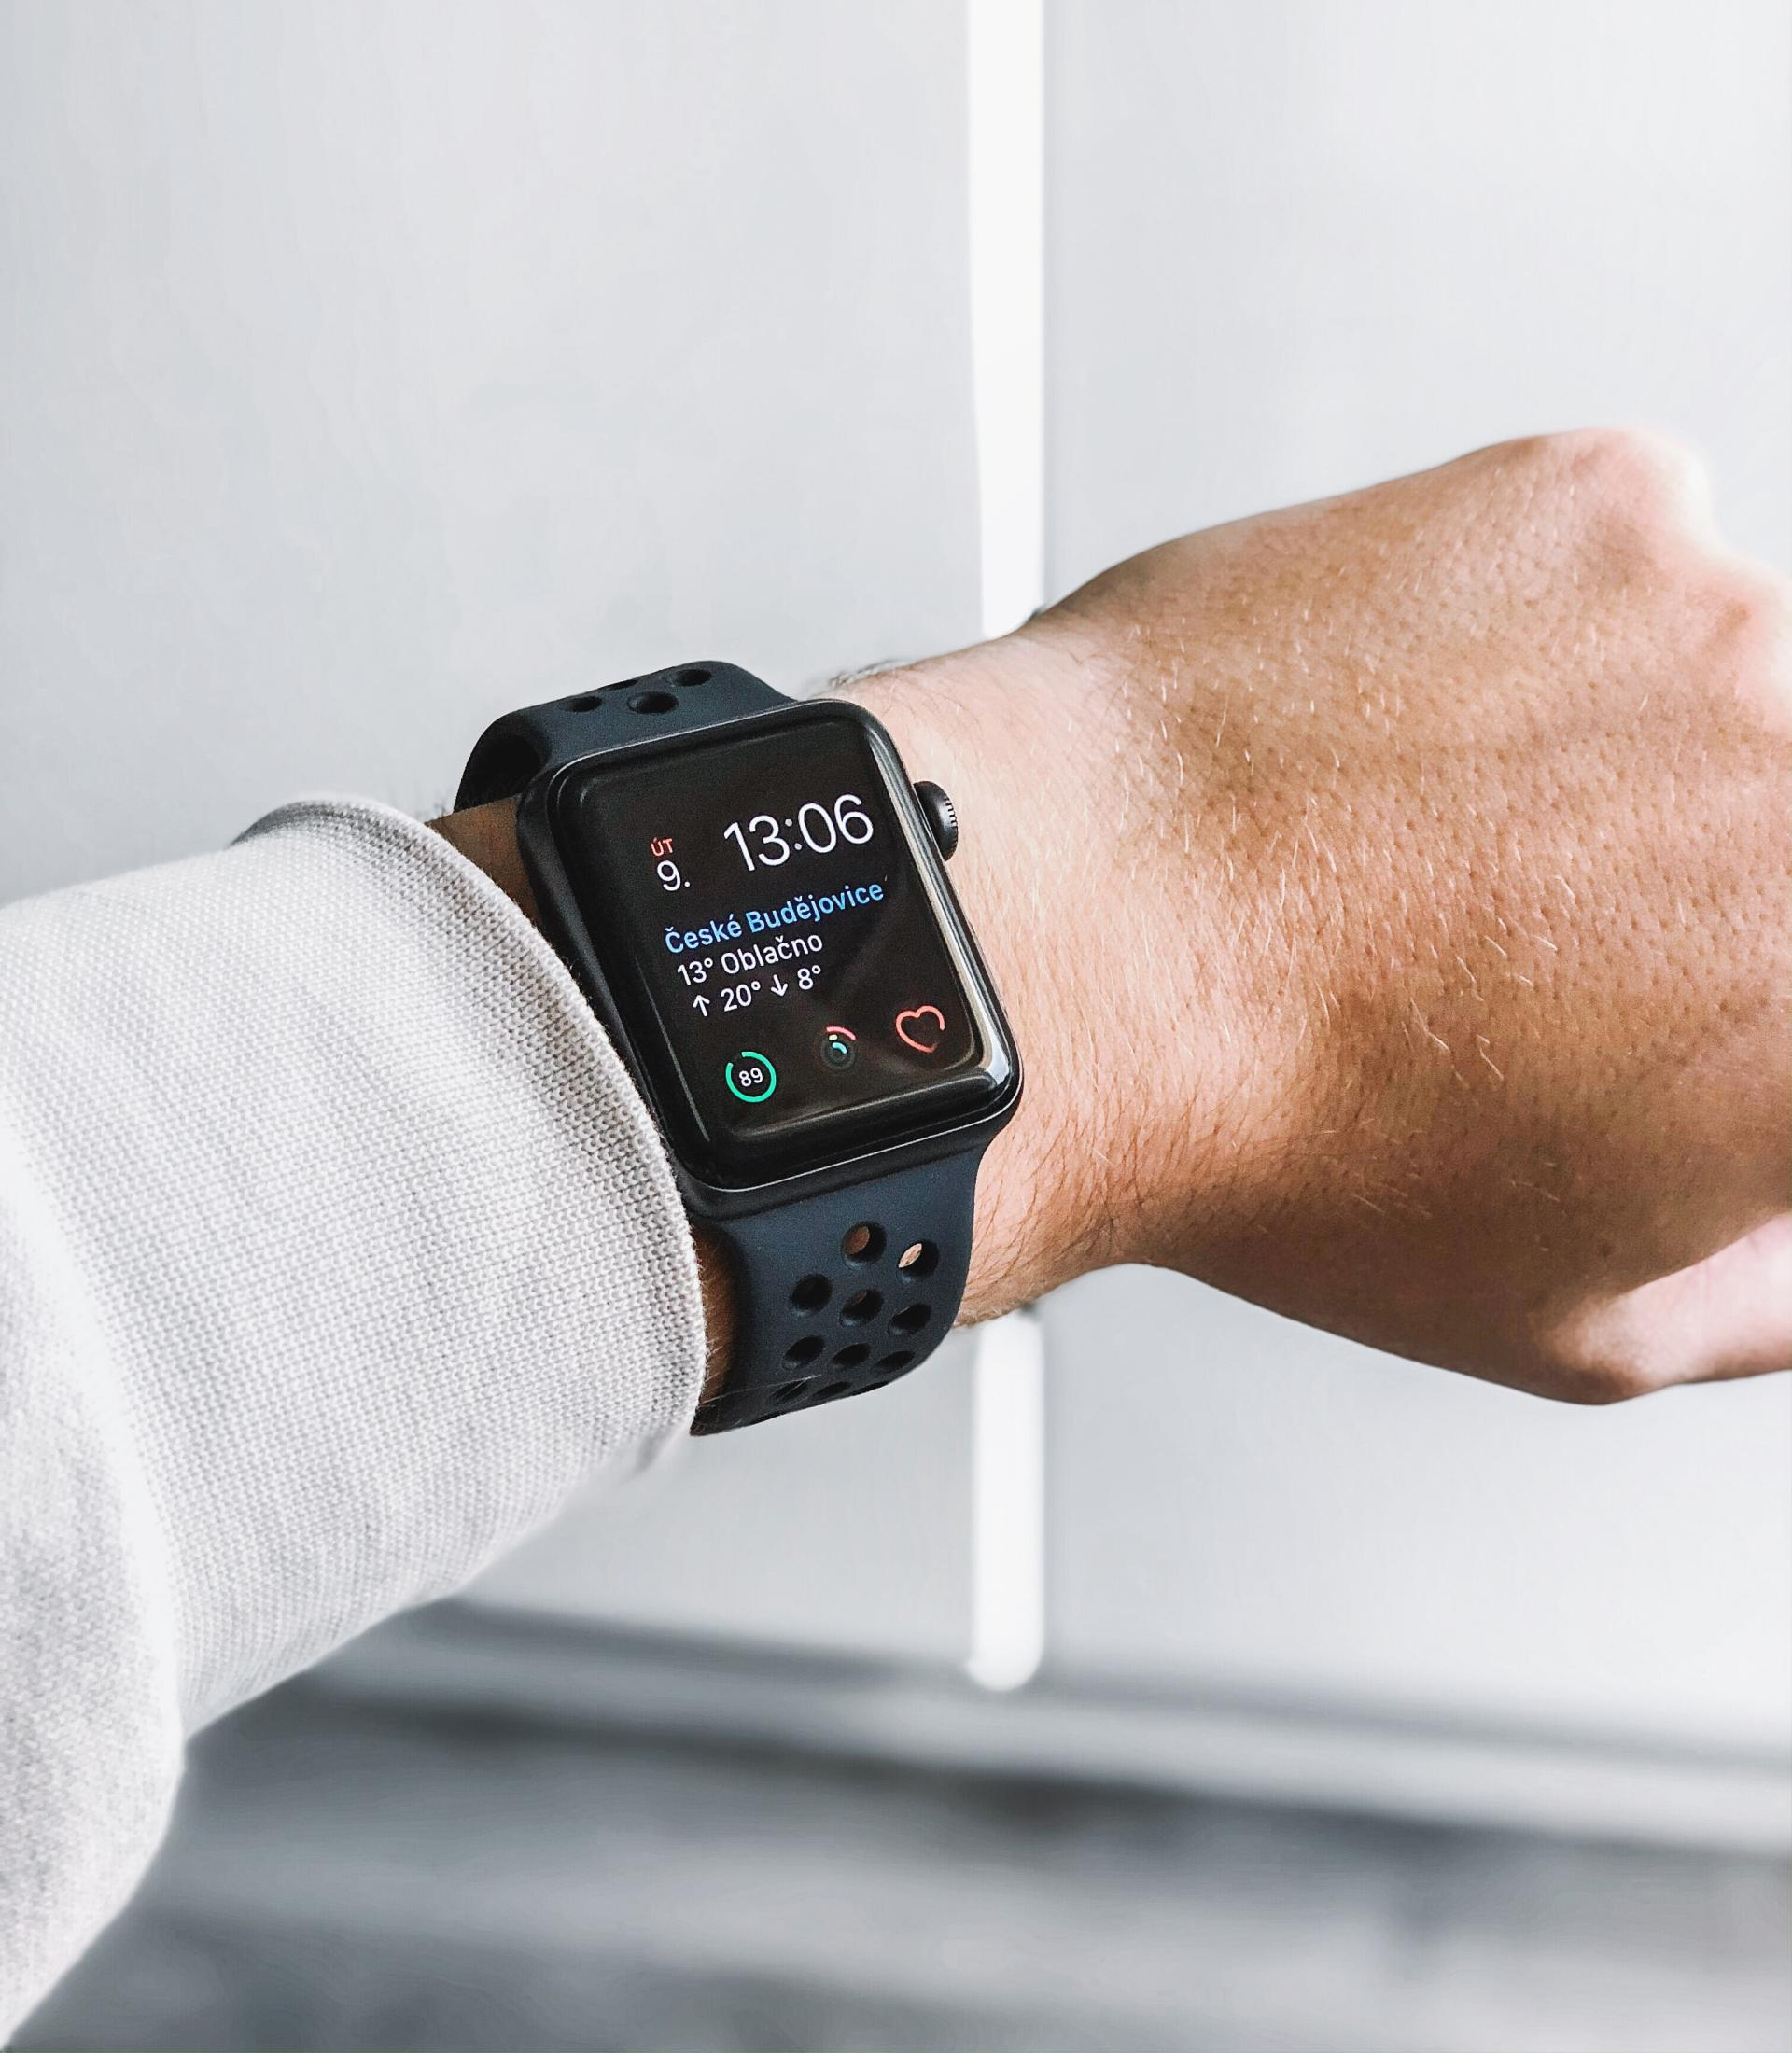 apple watch on persons wrist